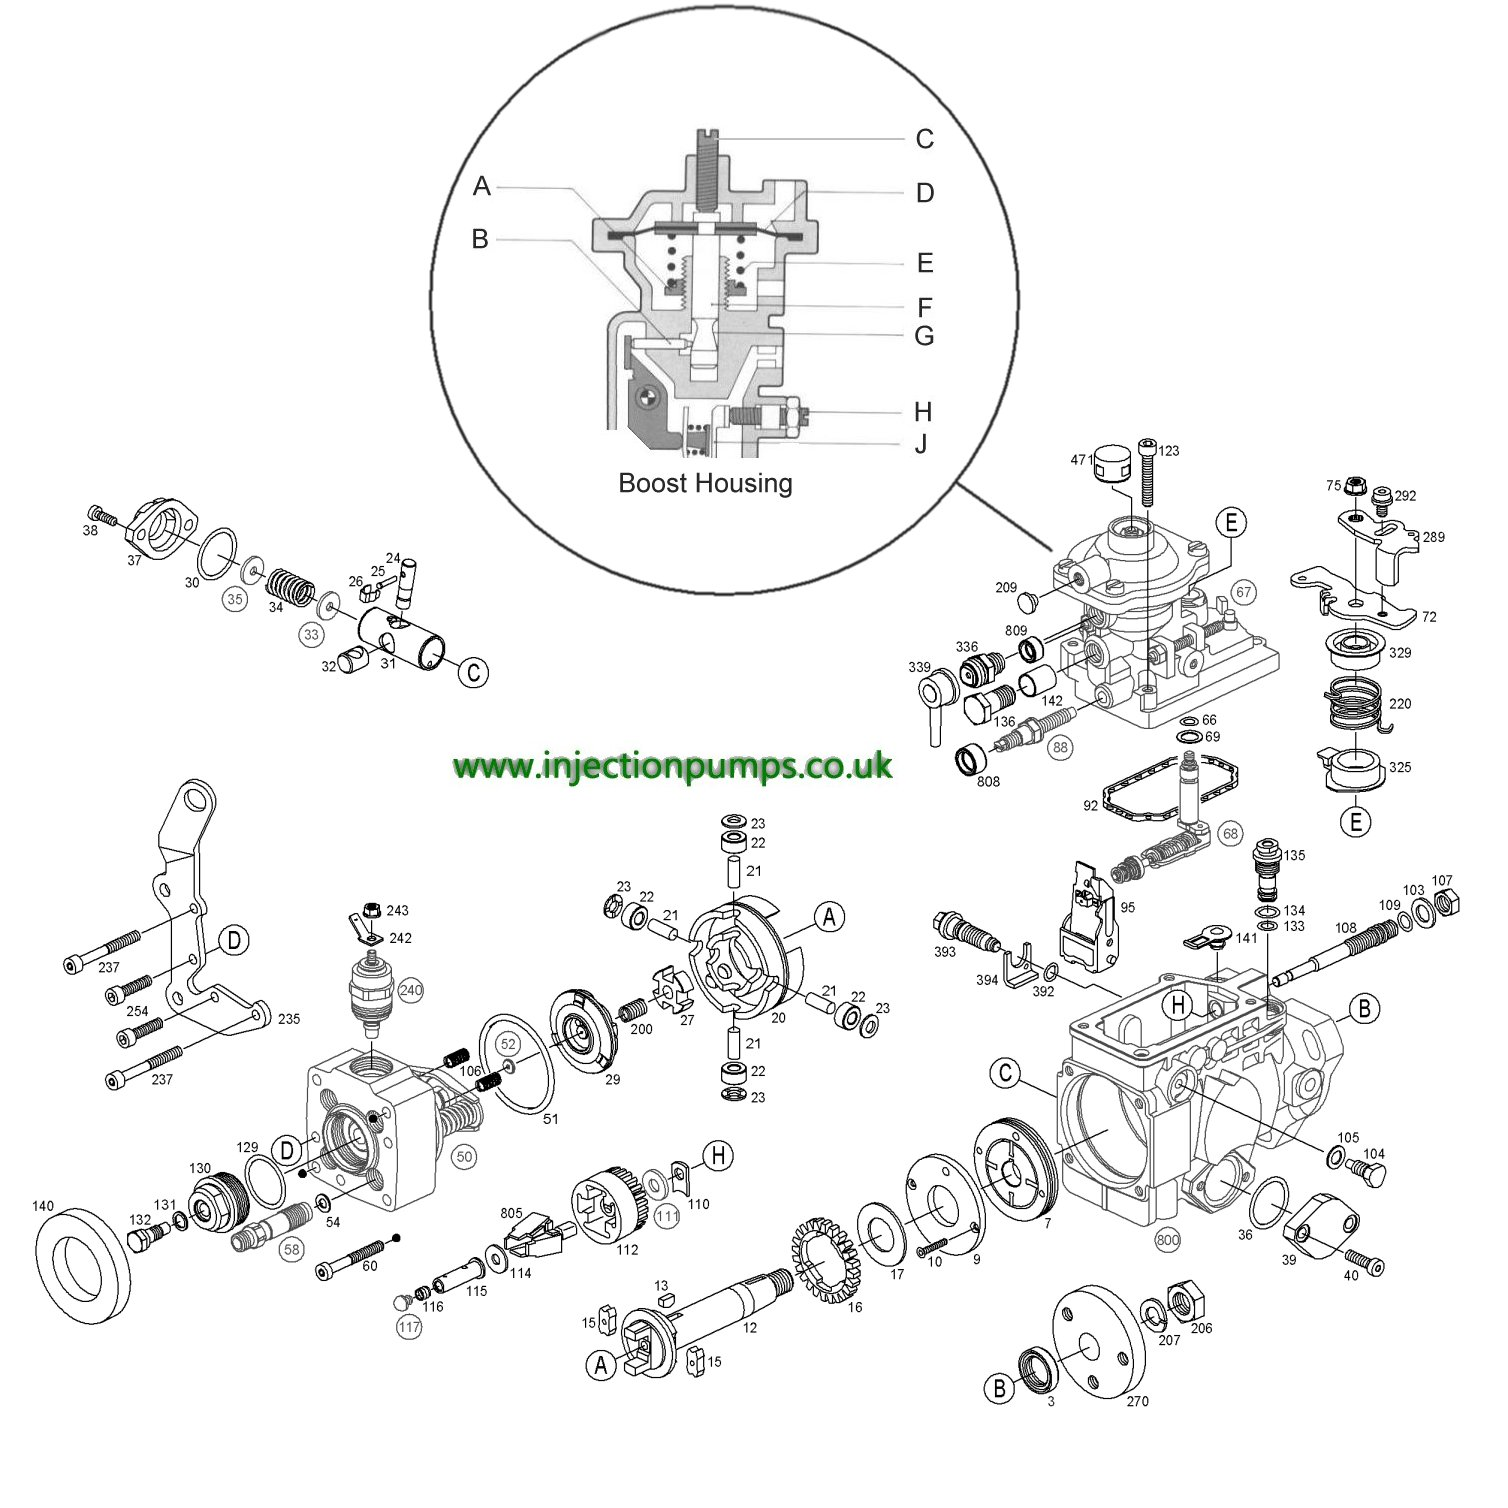 Mitsubishi L200 Fuel Pump Wiring Diagram Also Traction Control Module